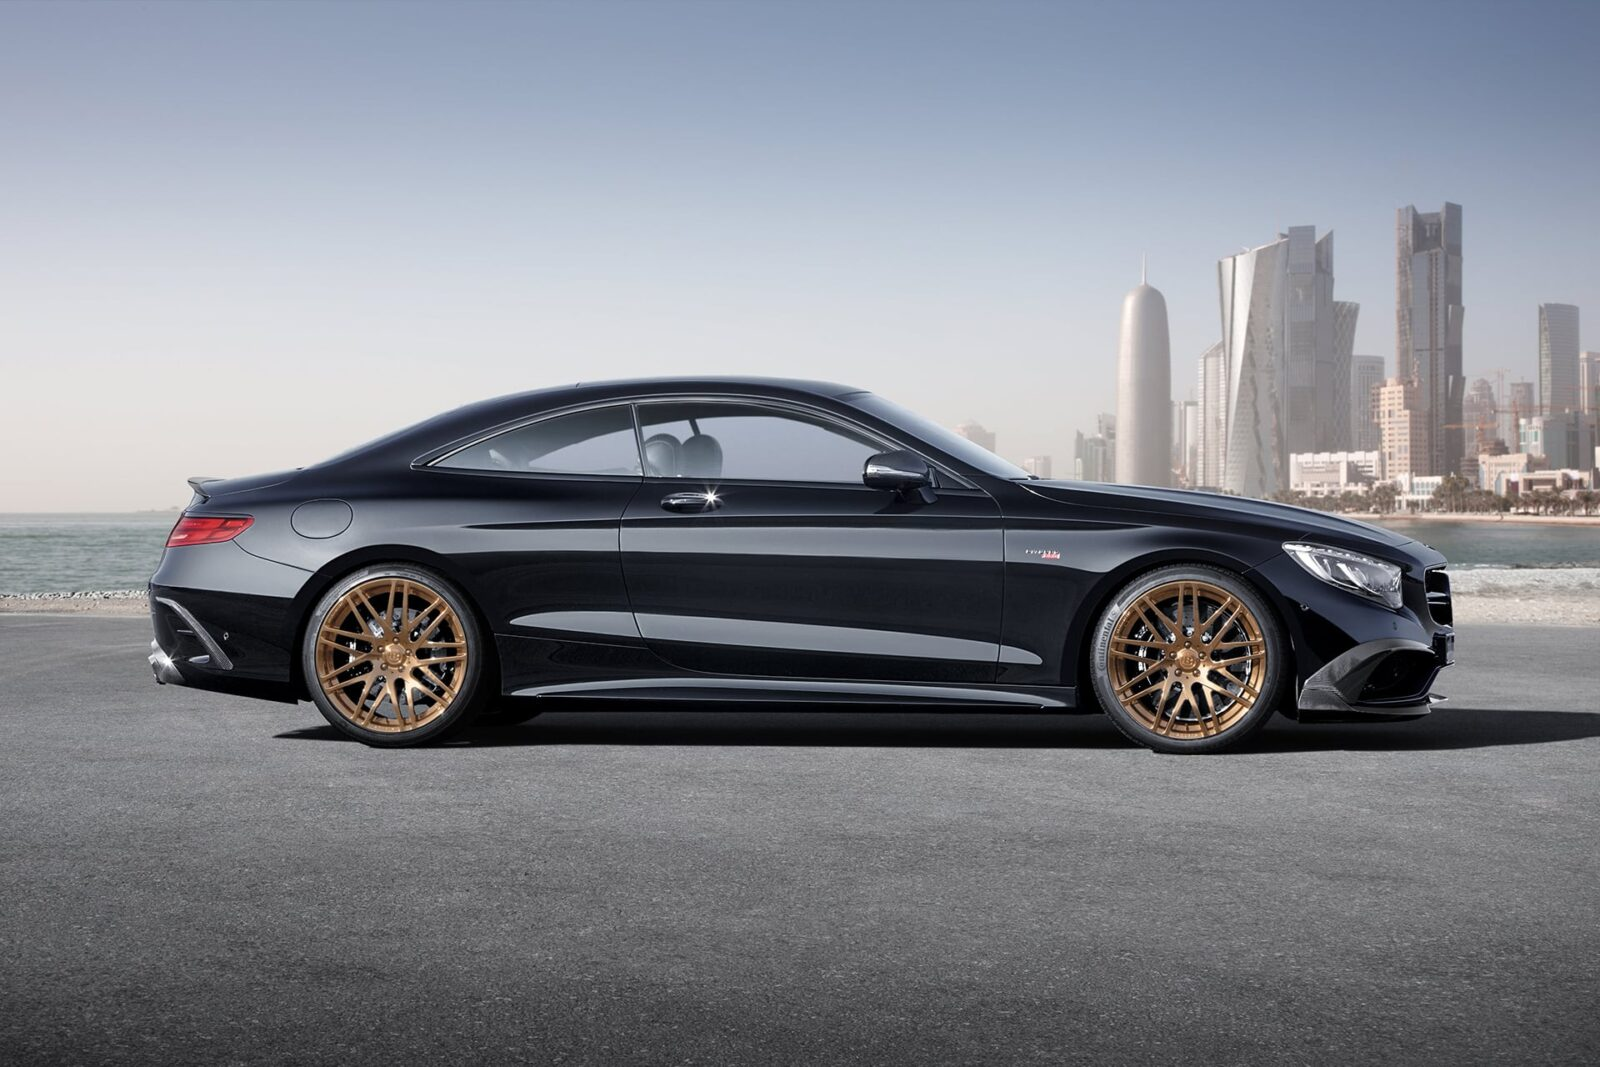 Mercedes benz amg s63 coupe wallpapers hd download for Mercedes benz s 63 amg